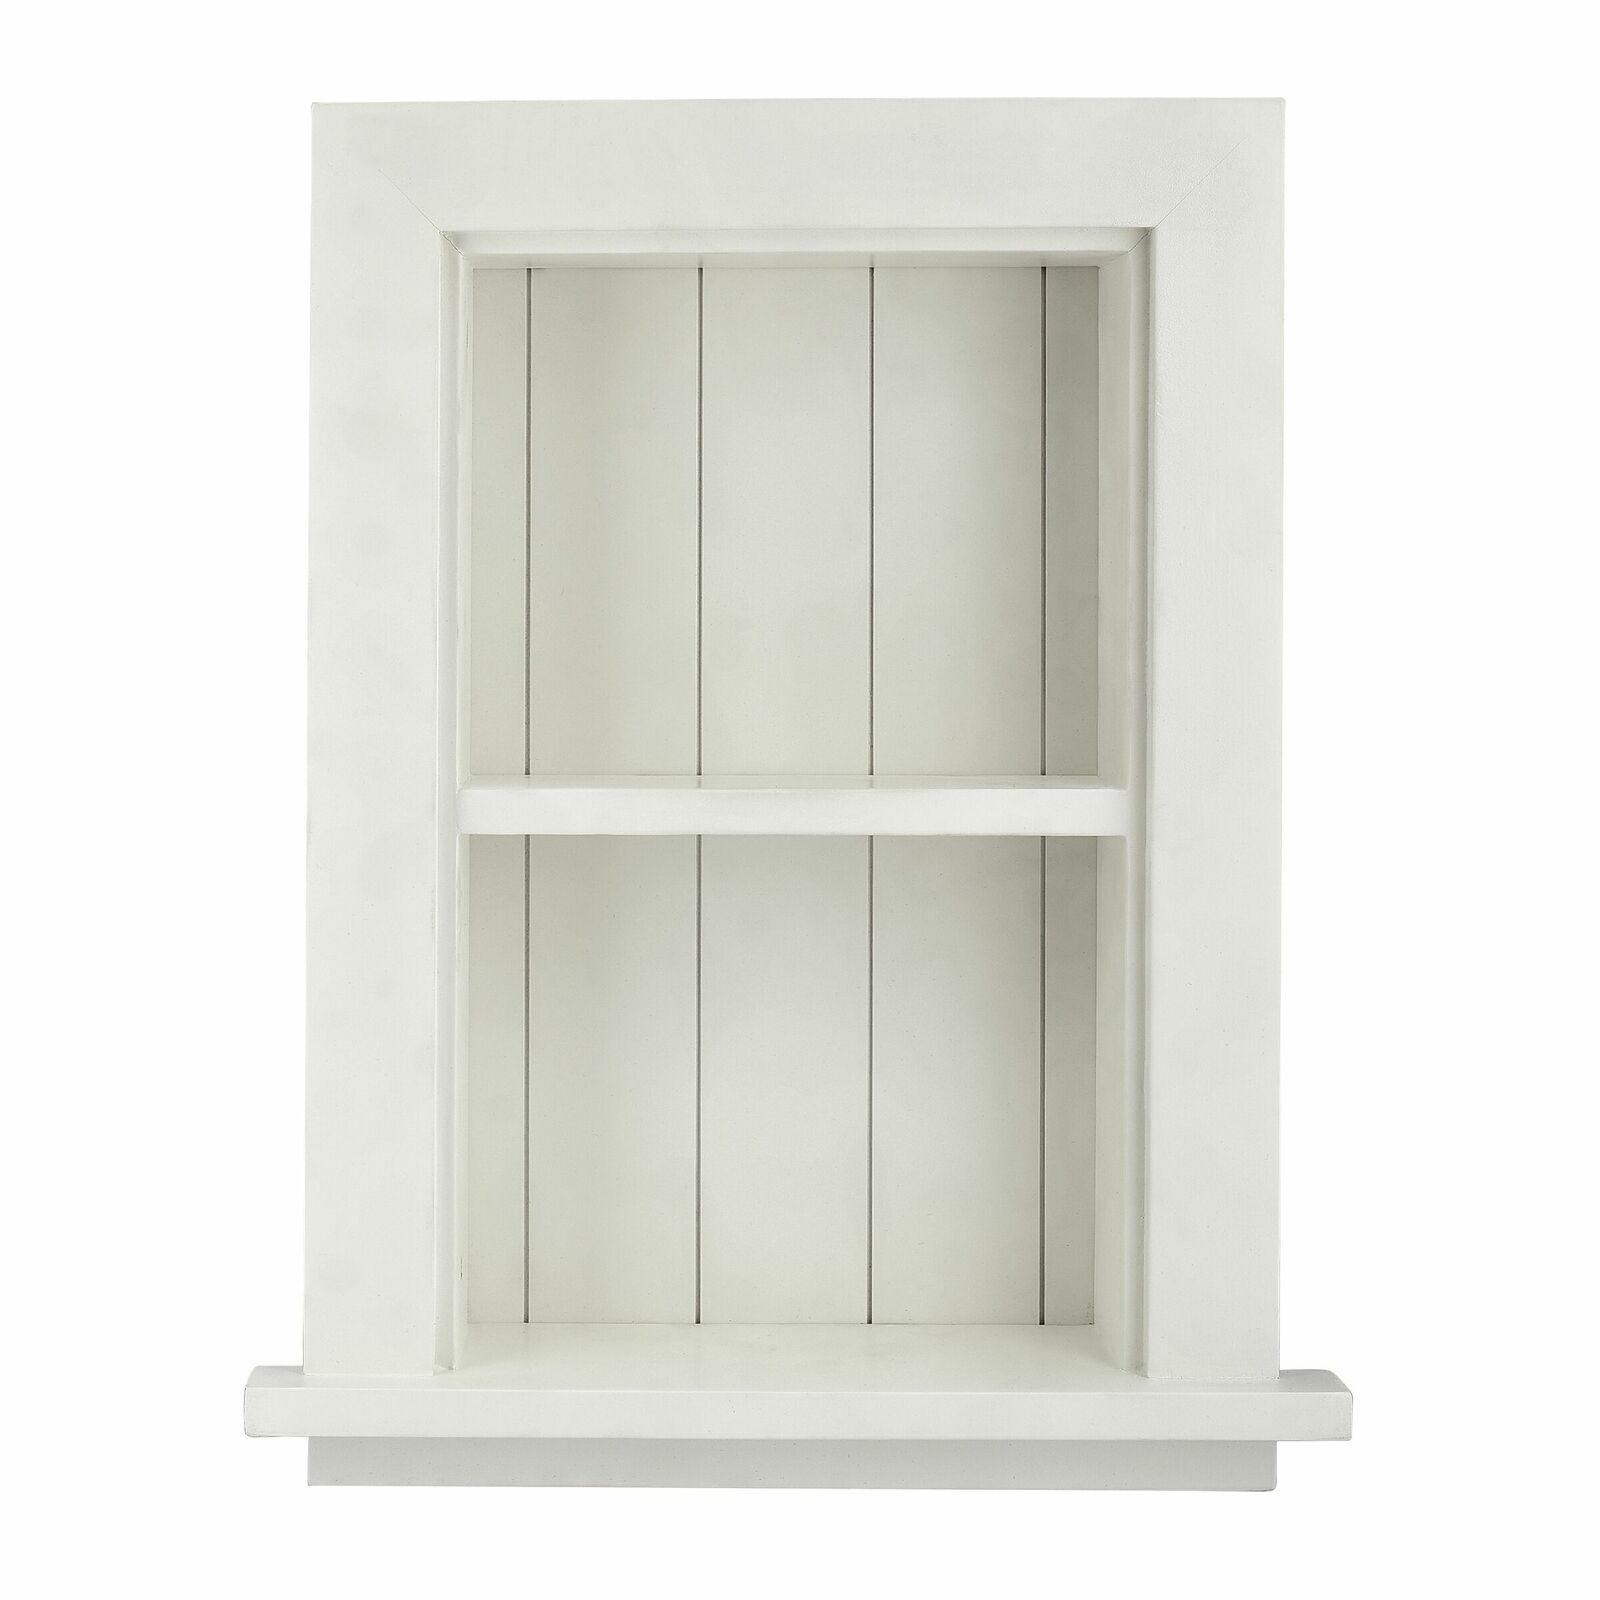 Details About Adirhome White Wood Home Decor Bathroom Recessed Storage Wall Cabinet With Shelf